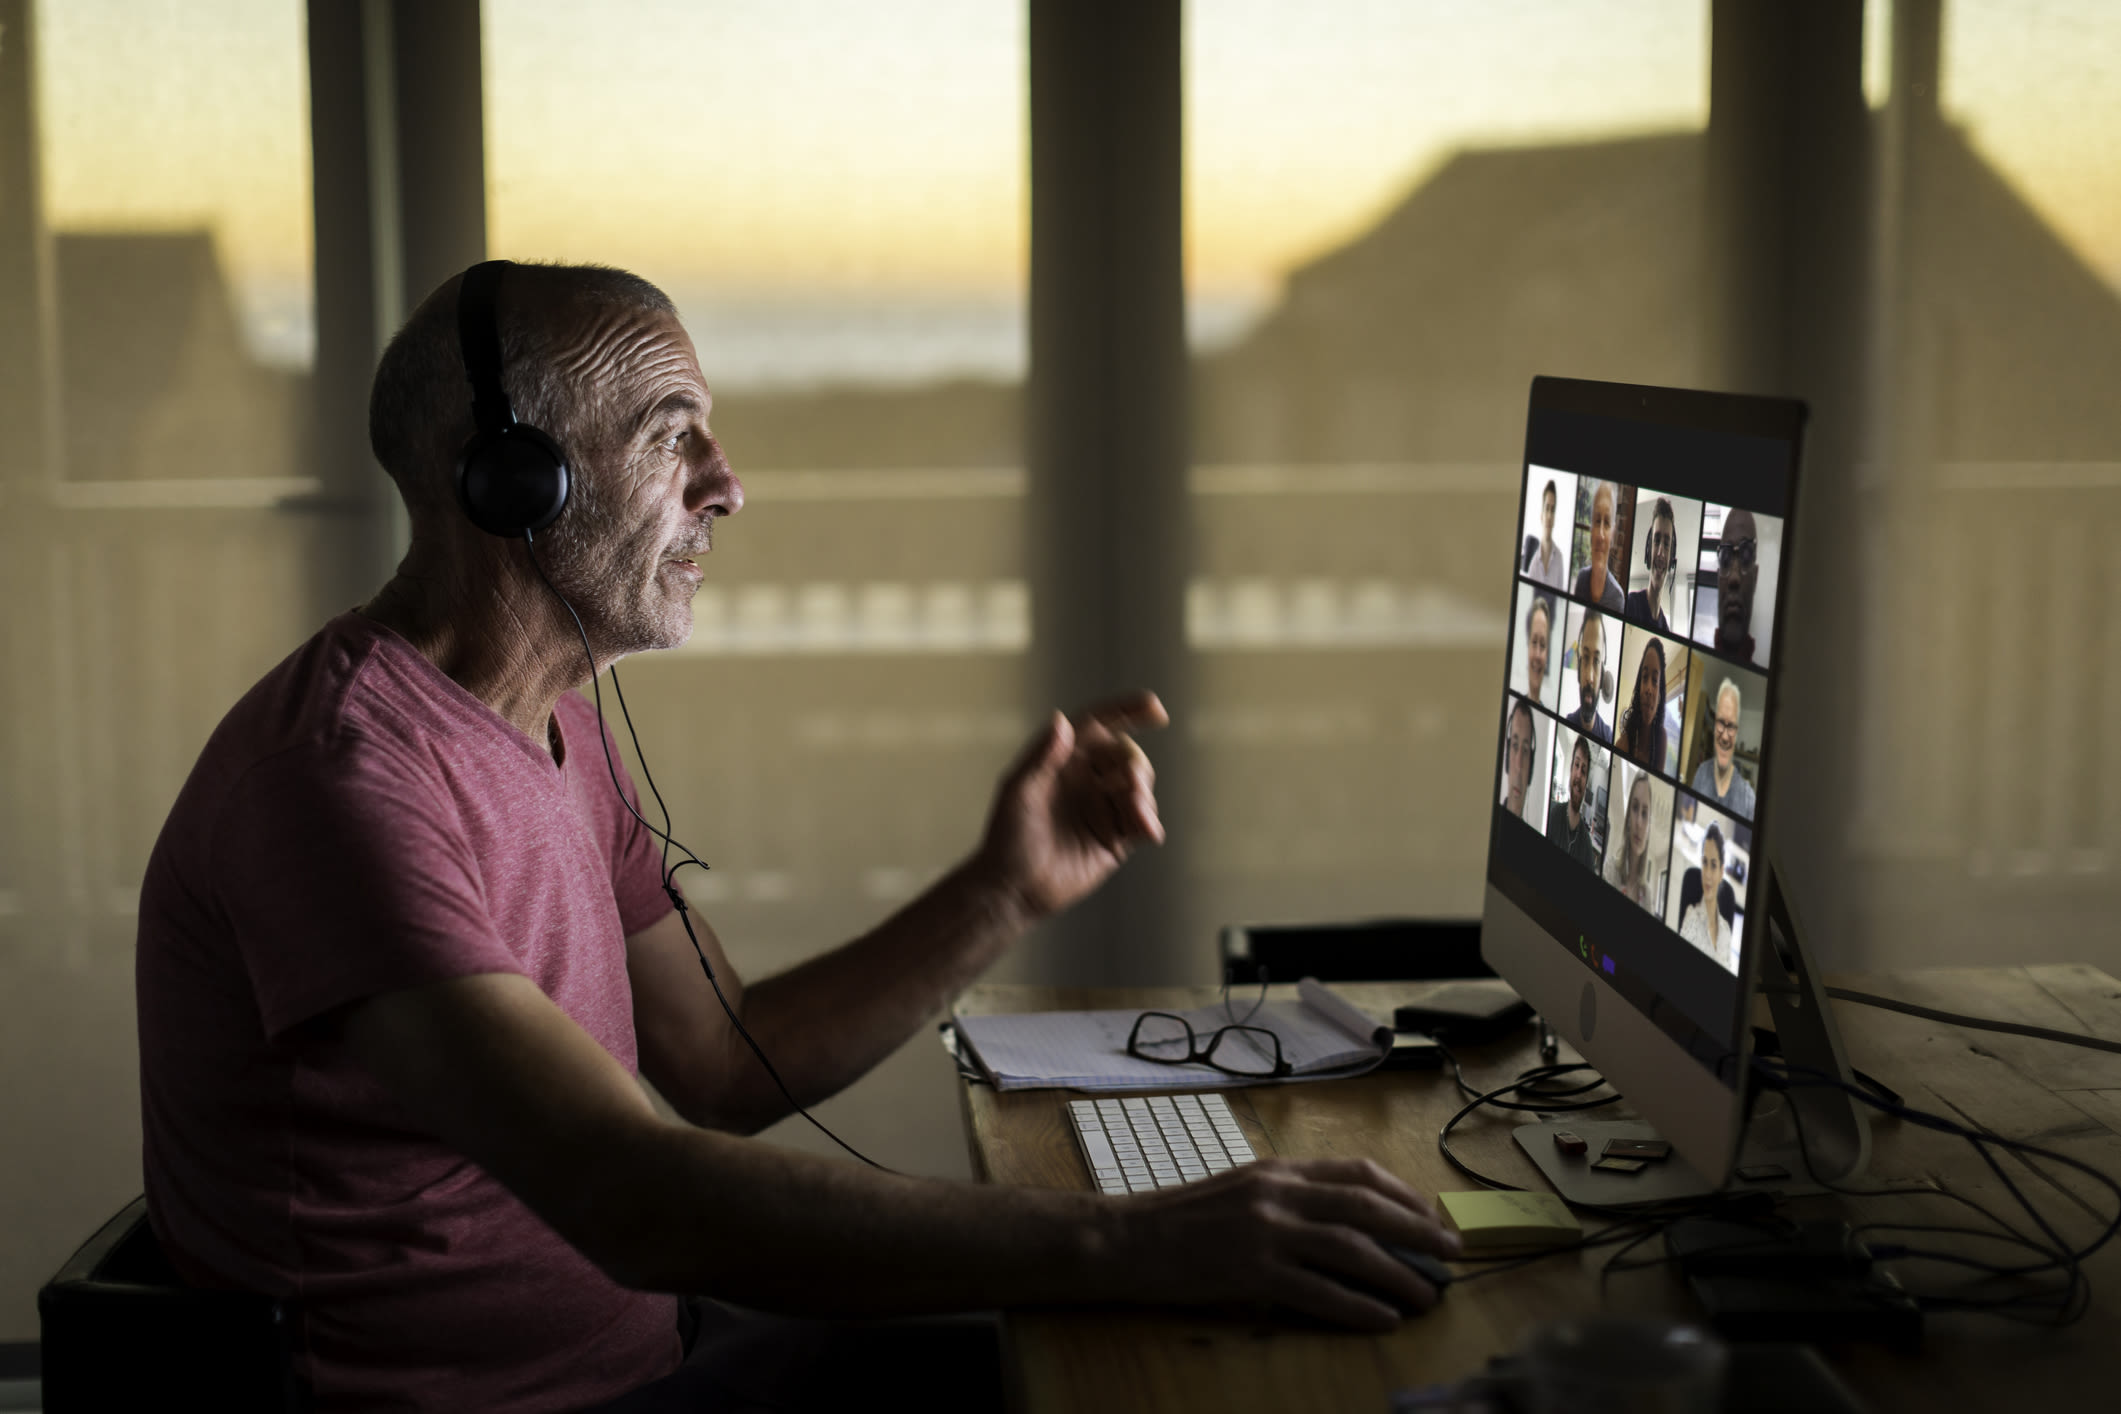 Man wearing headphones on a video call with a team of people